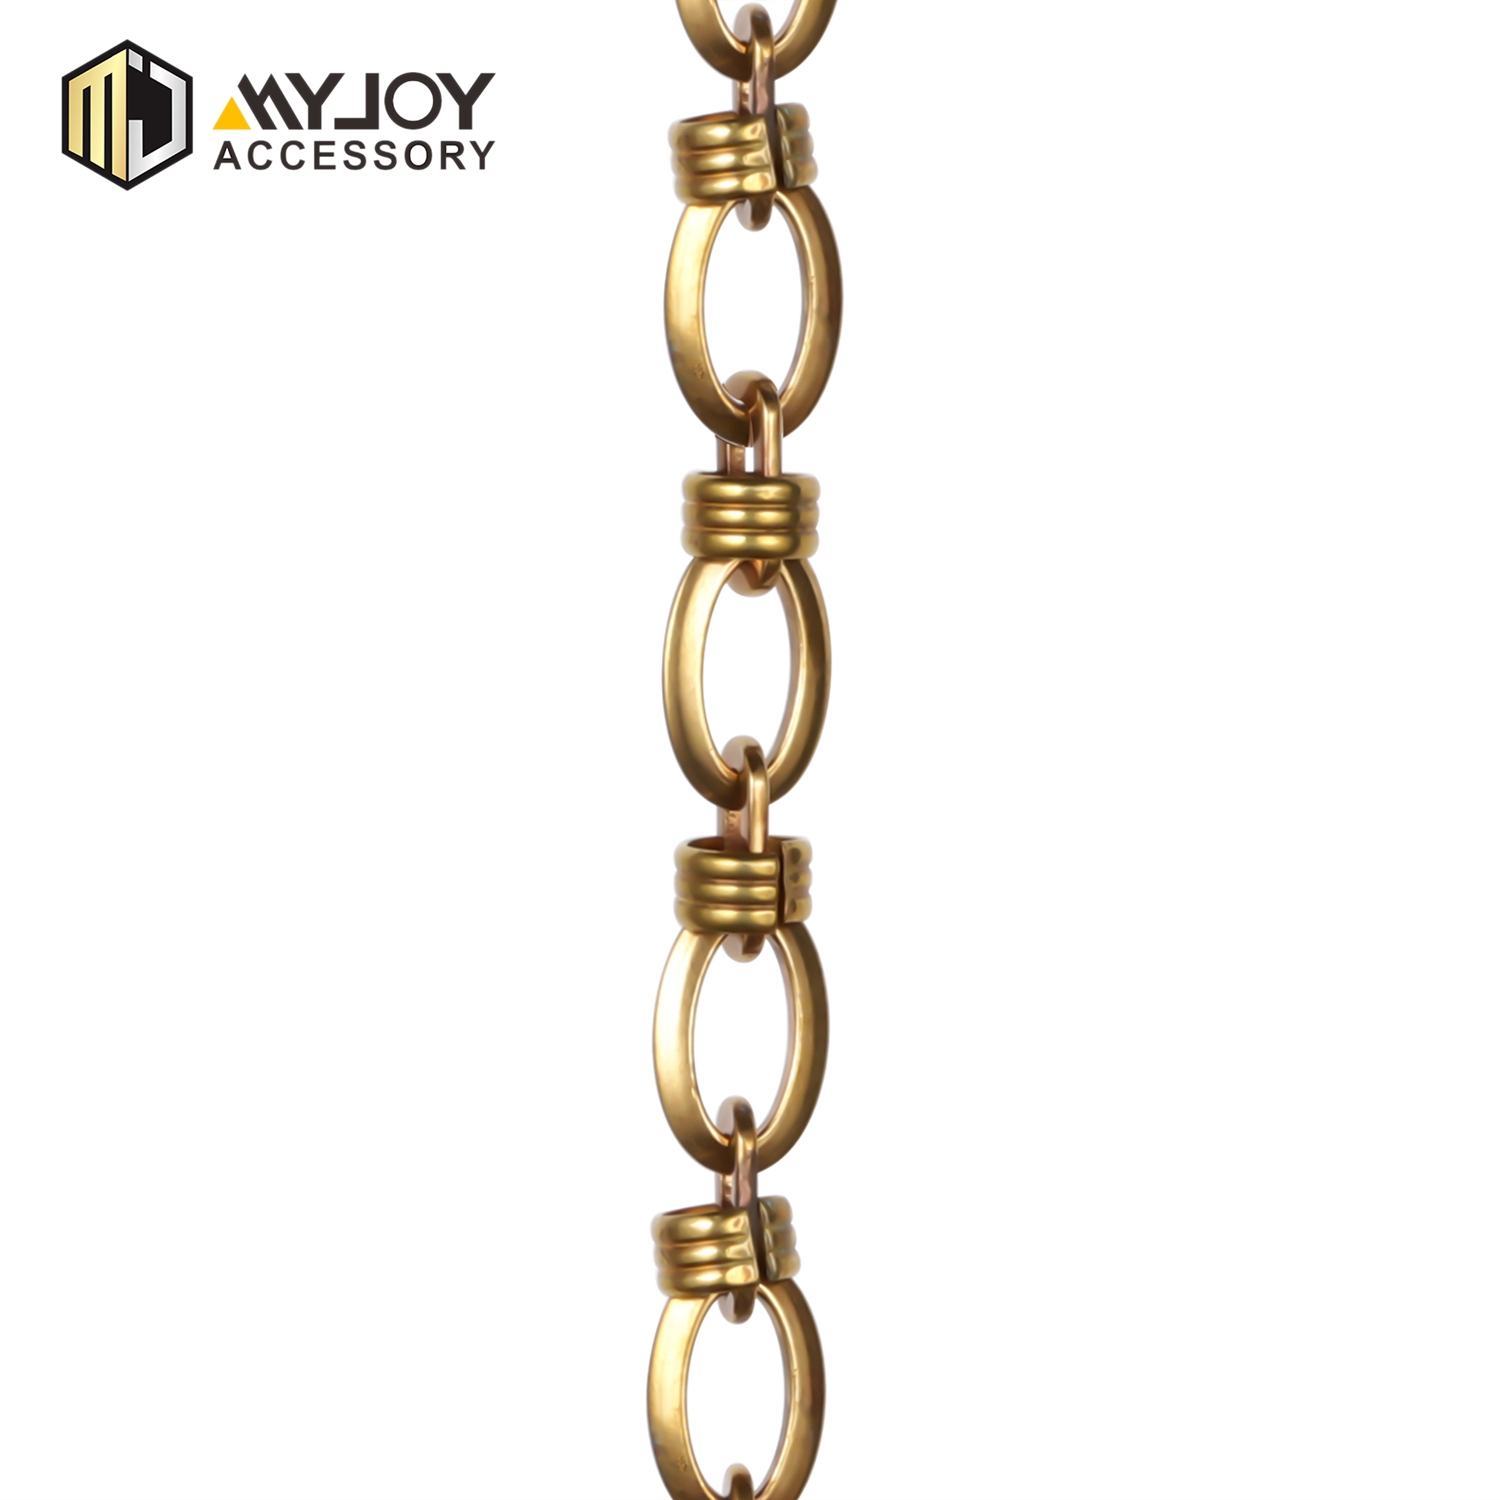 MYJOY vogue purse chain Supply for purses-1